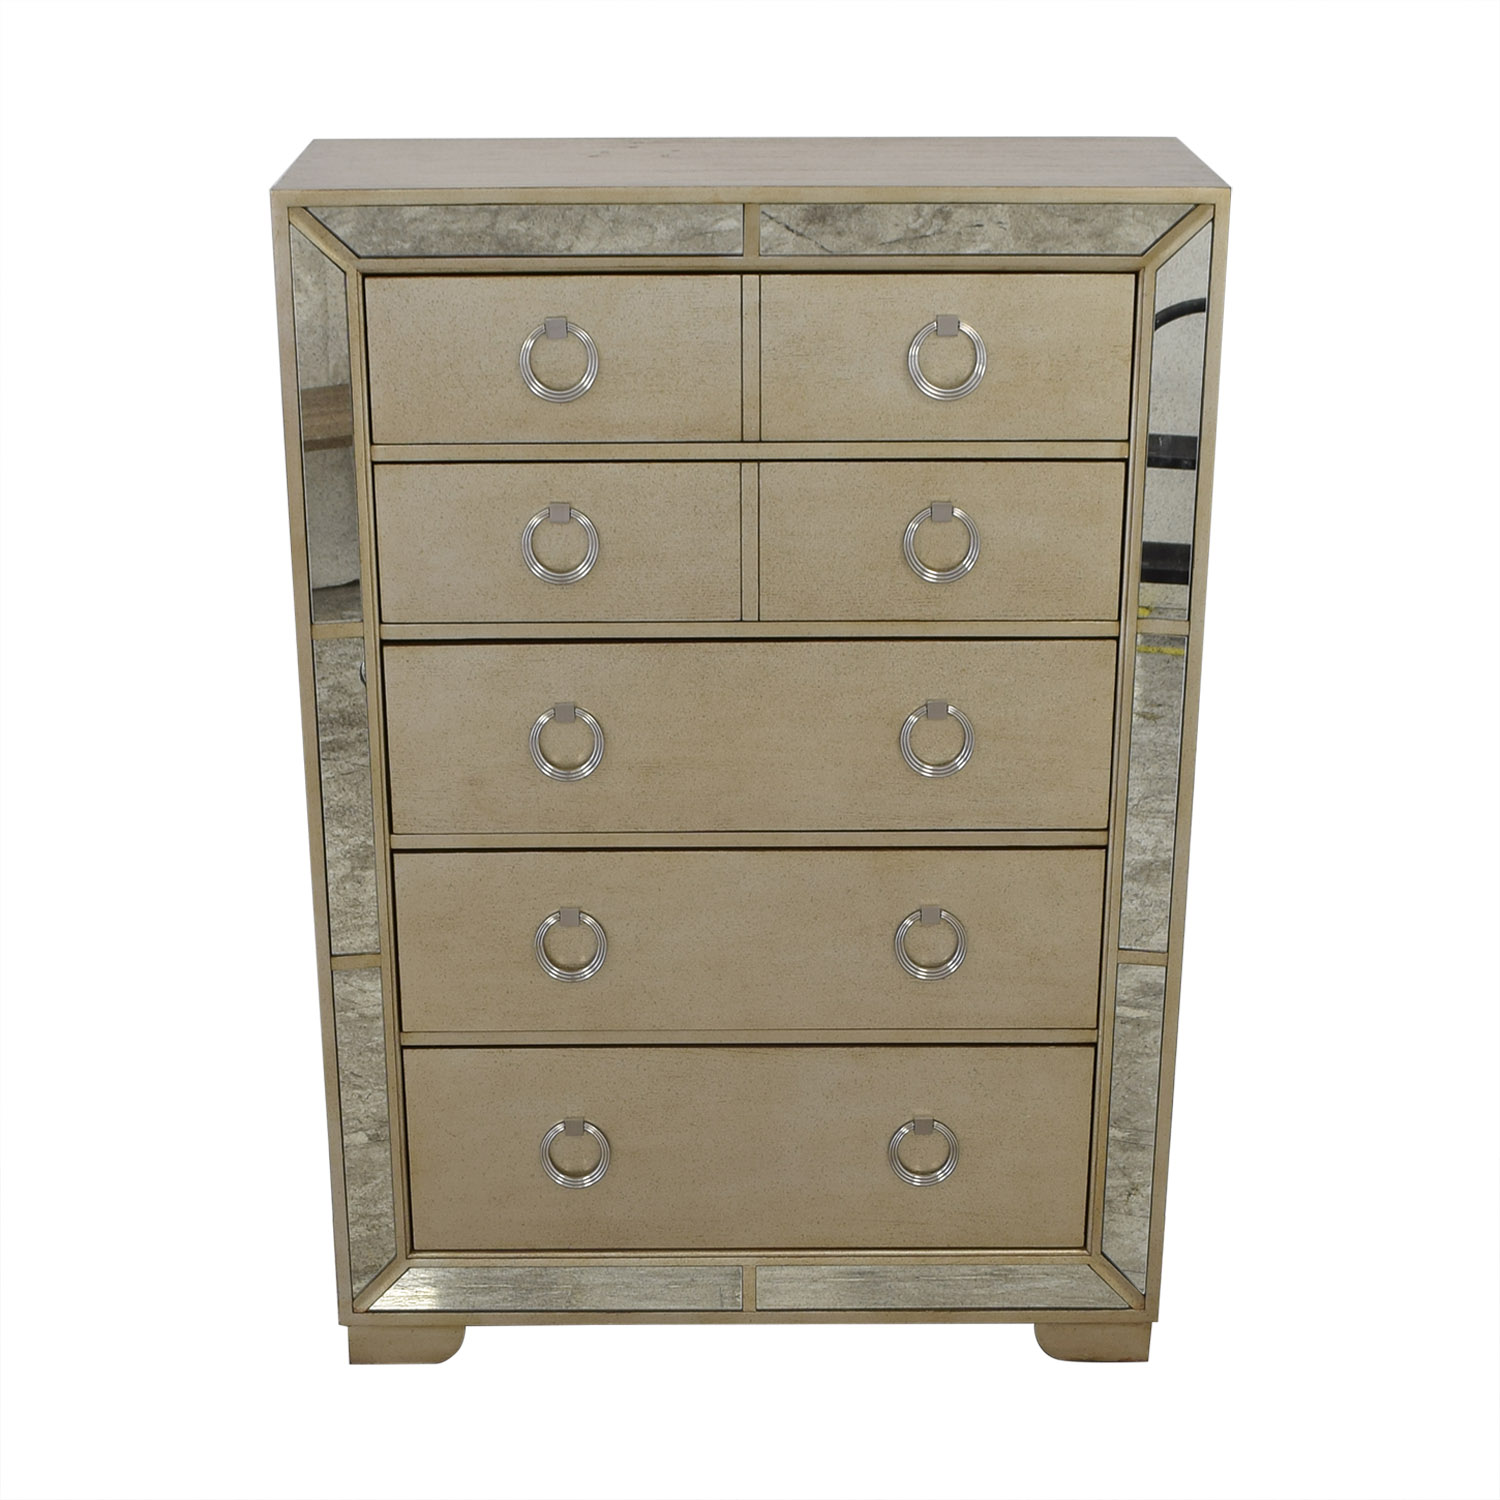 Macy's Macy's Ailey Five Drawer Chest Dressers